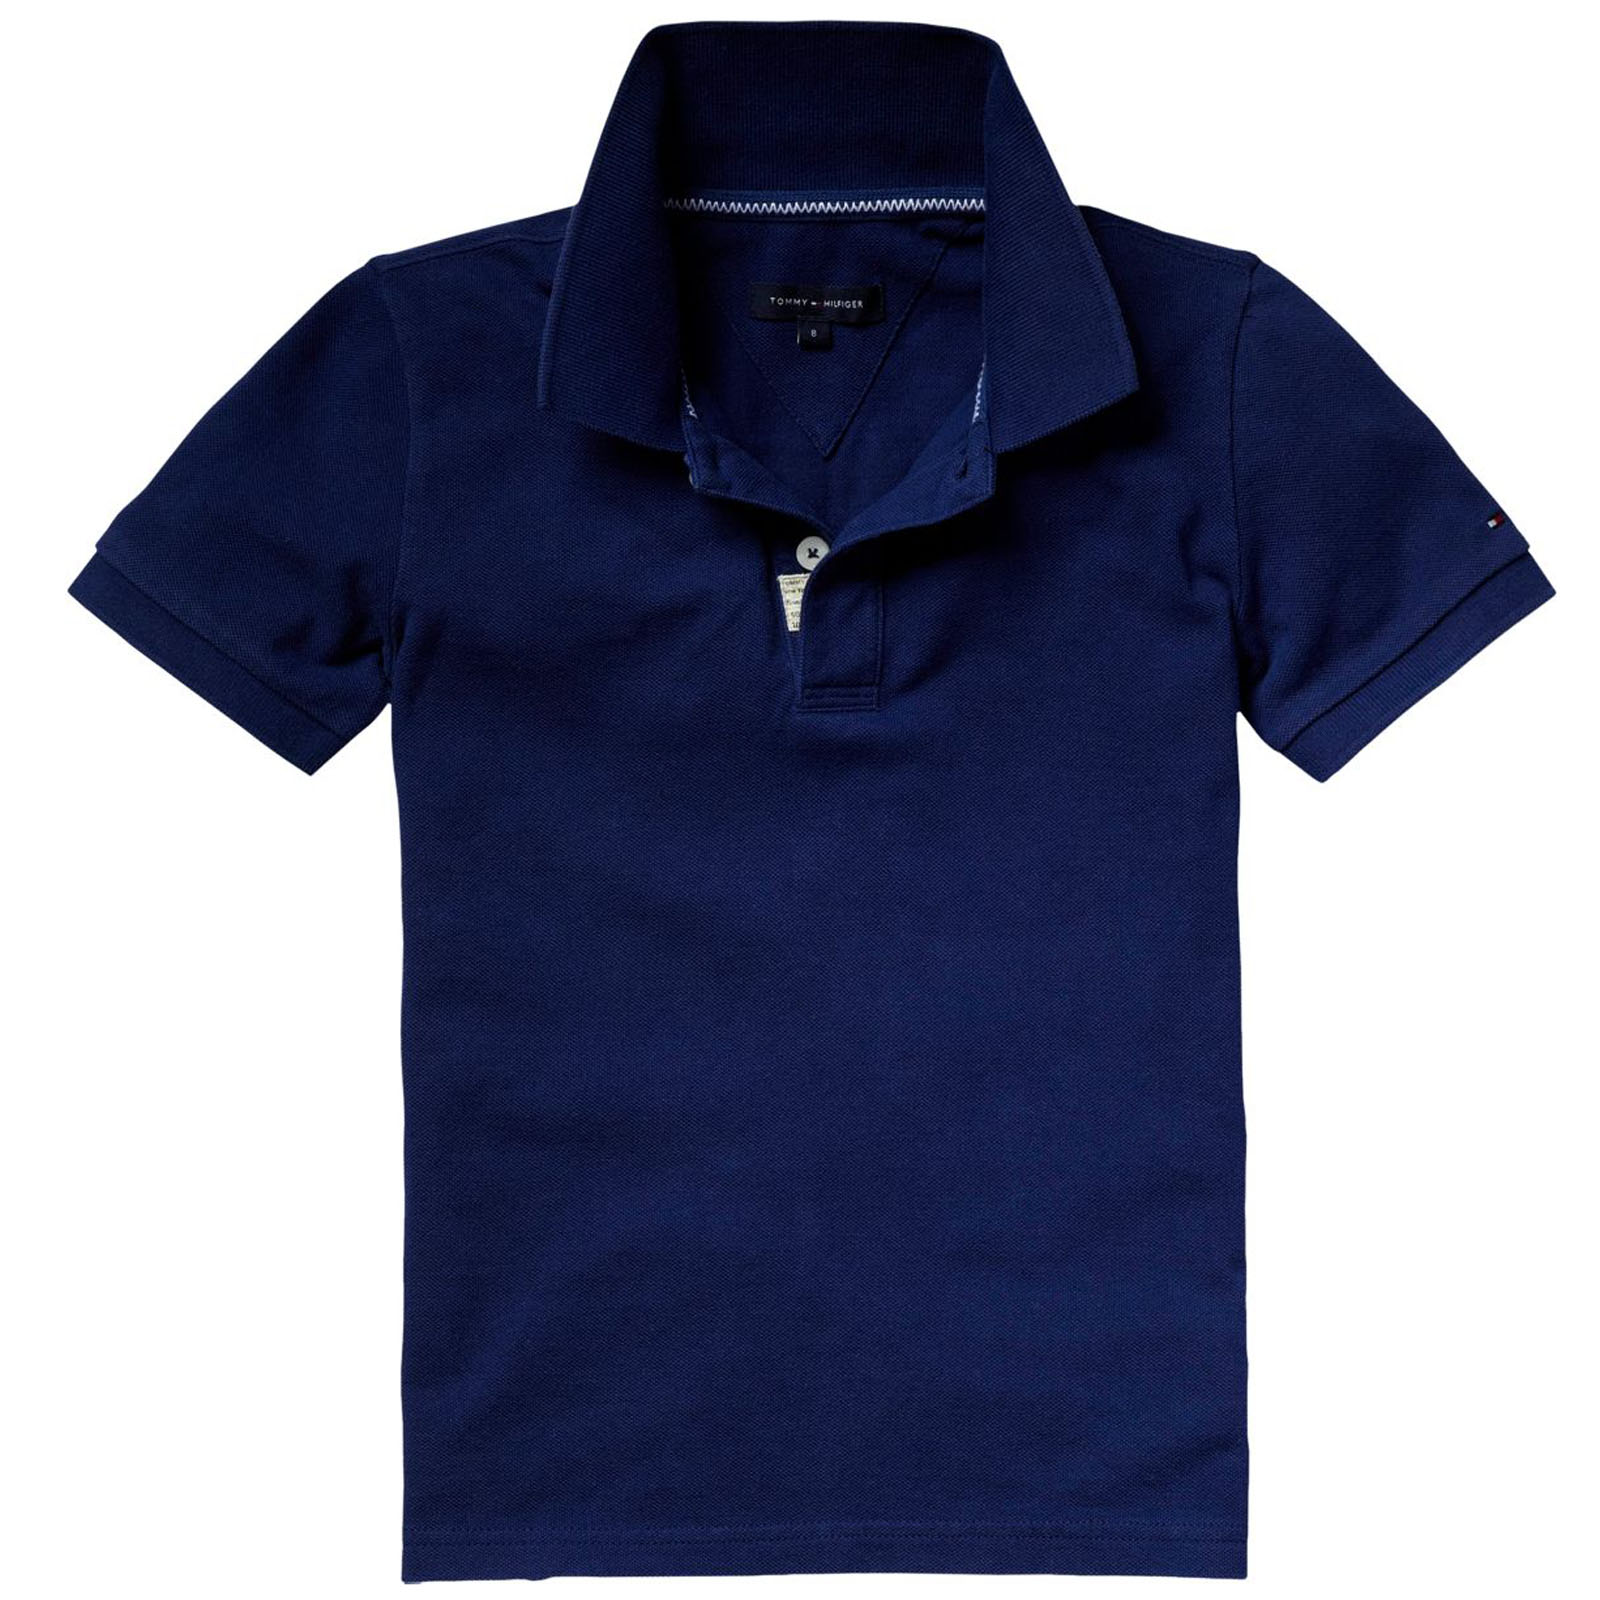 Blue polo shirt clipart clipart download Free Navy Shirt Cliparts, Download Free Clip Art, Free Clip Art on ... clipart download